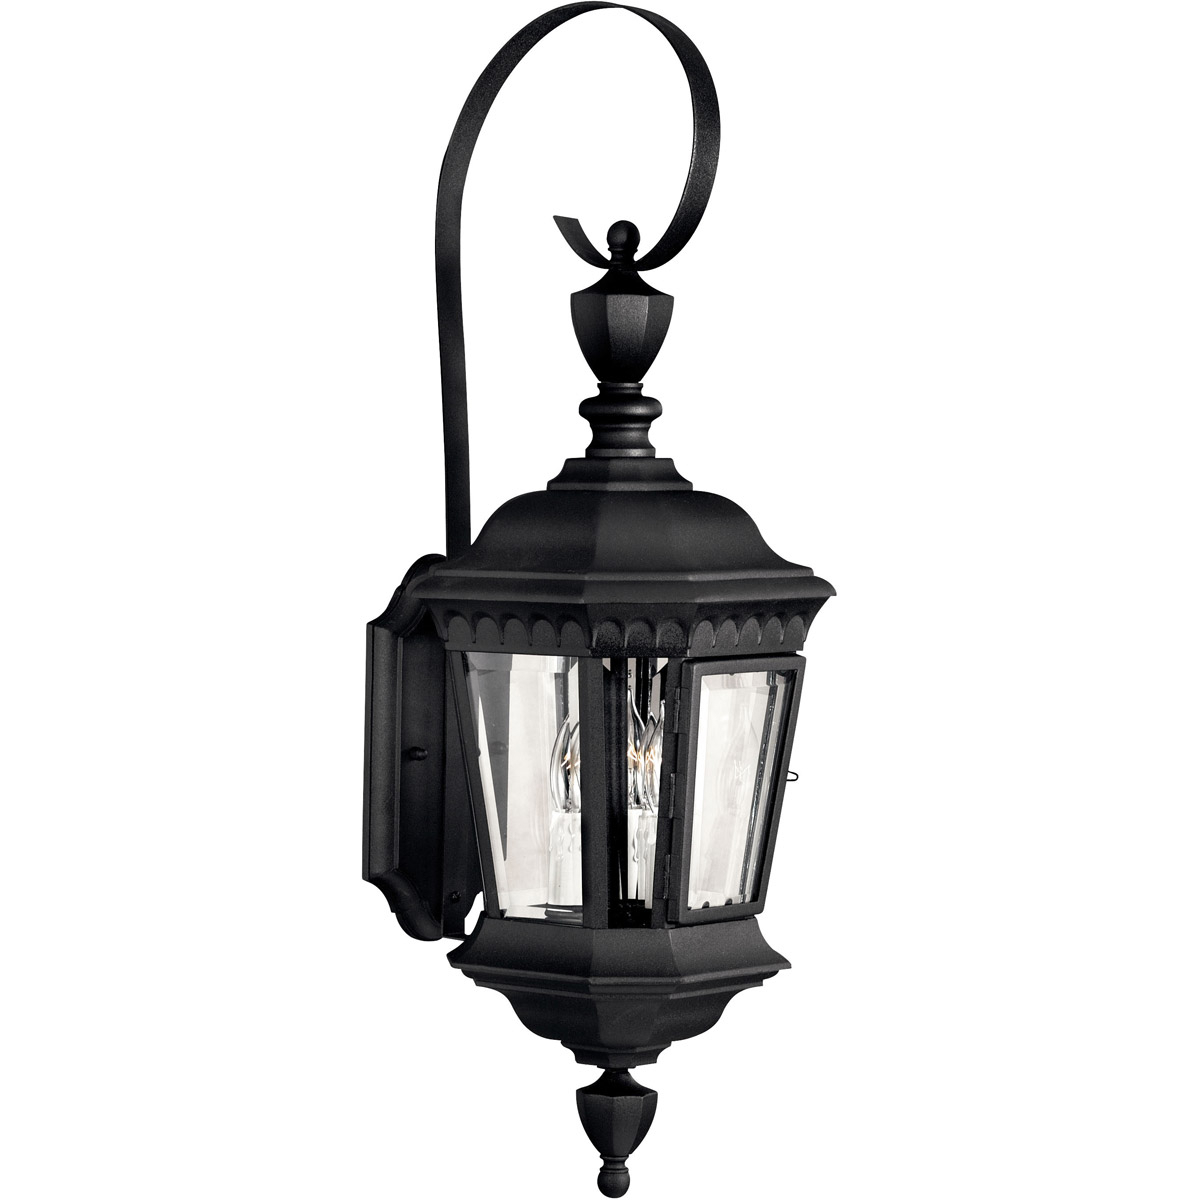 2019 Hinkley Lighting 1704bk Camelot 3 Light 27 Inch Black Throughout Roden Black 3 Bulb Outdoor Wall Lanterns (View 13 of 15)